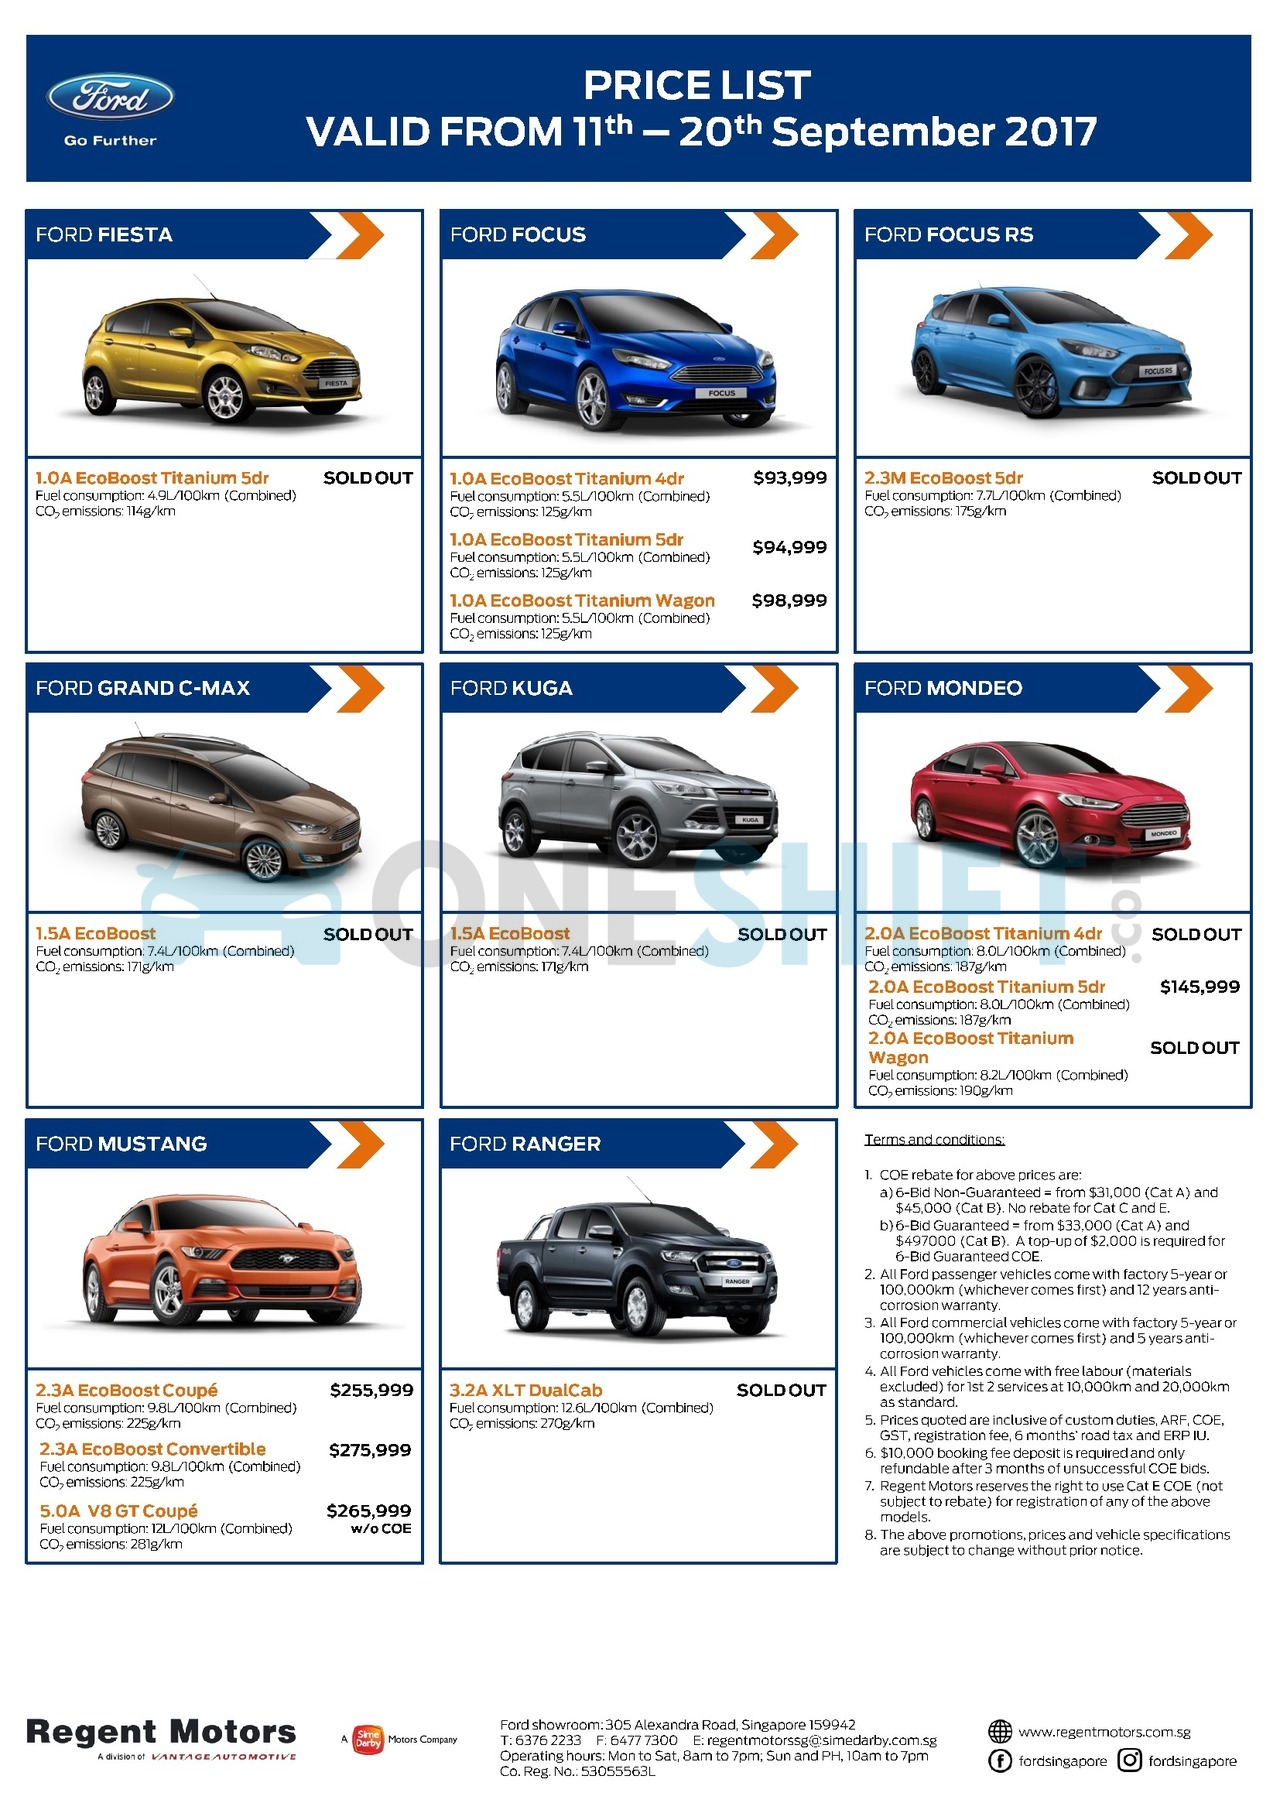 ford Price List 9-11-2017 Page 1